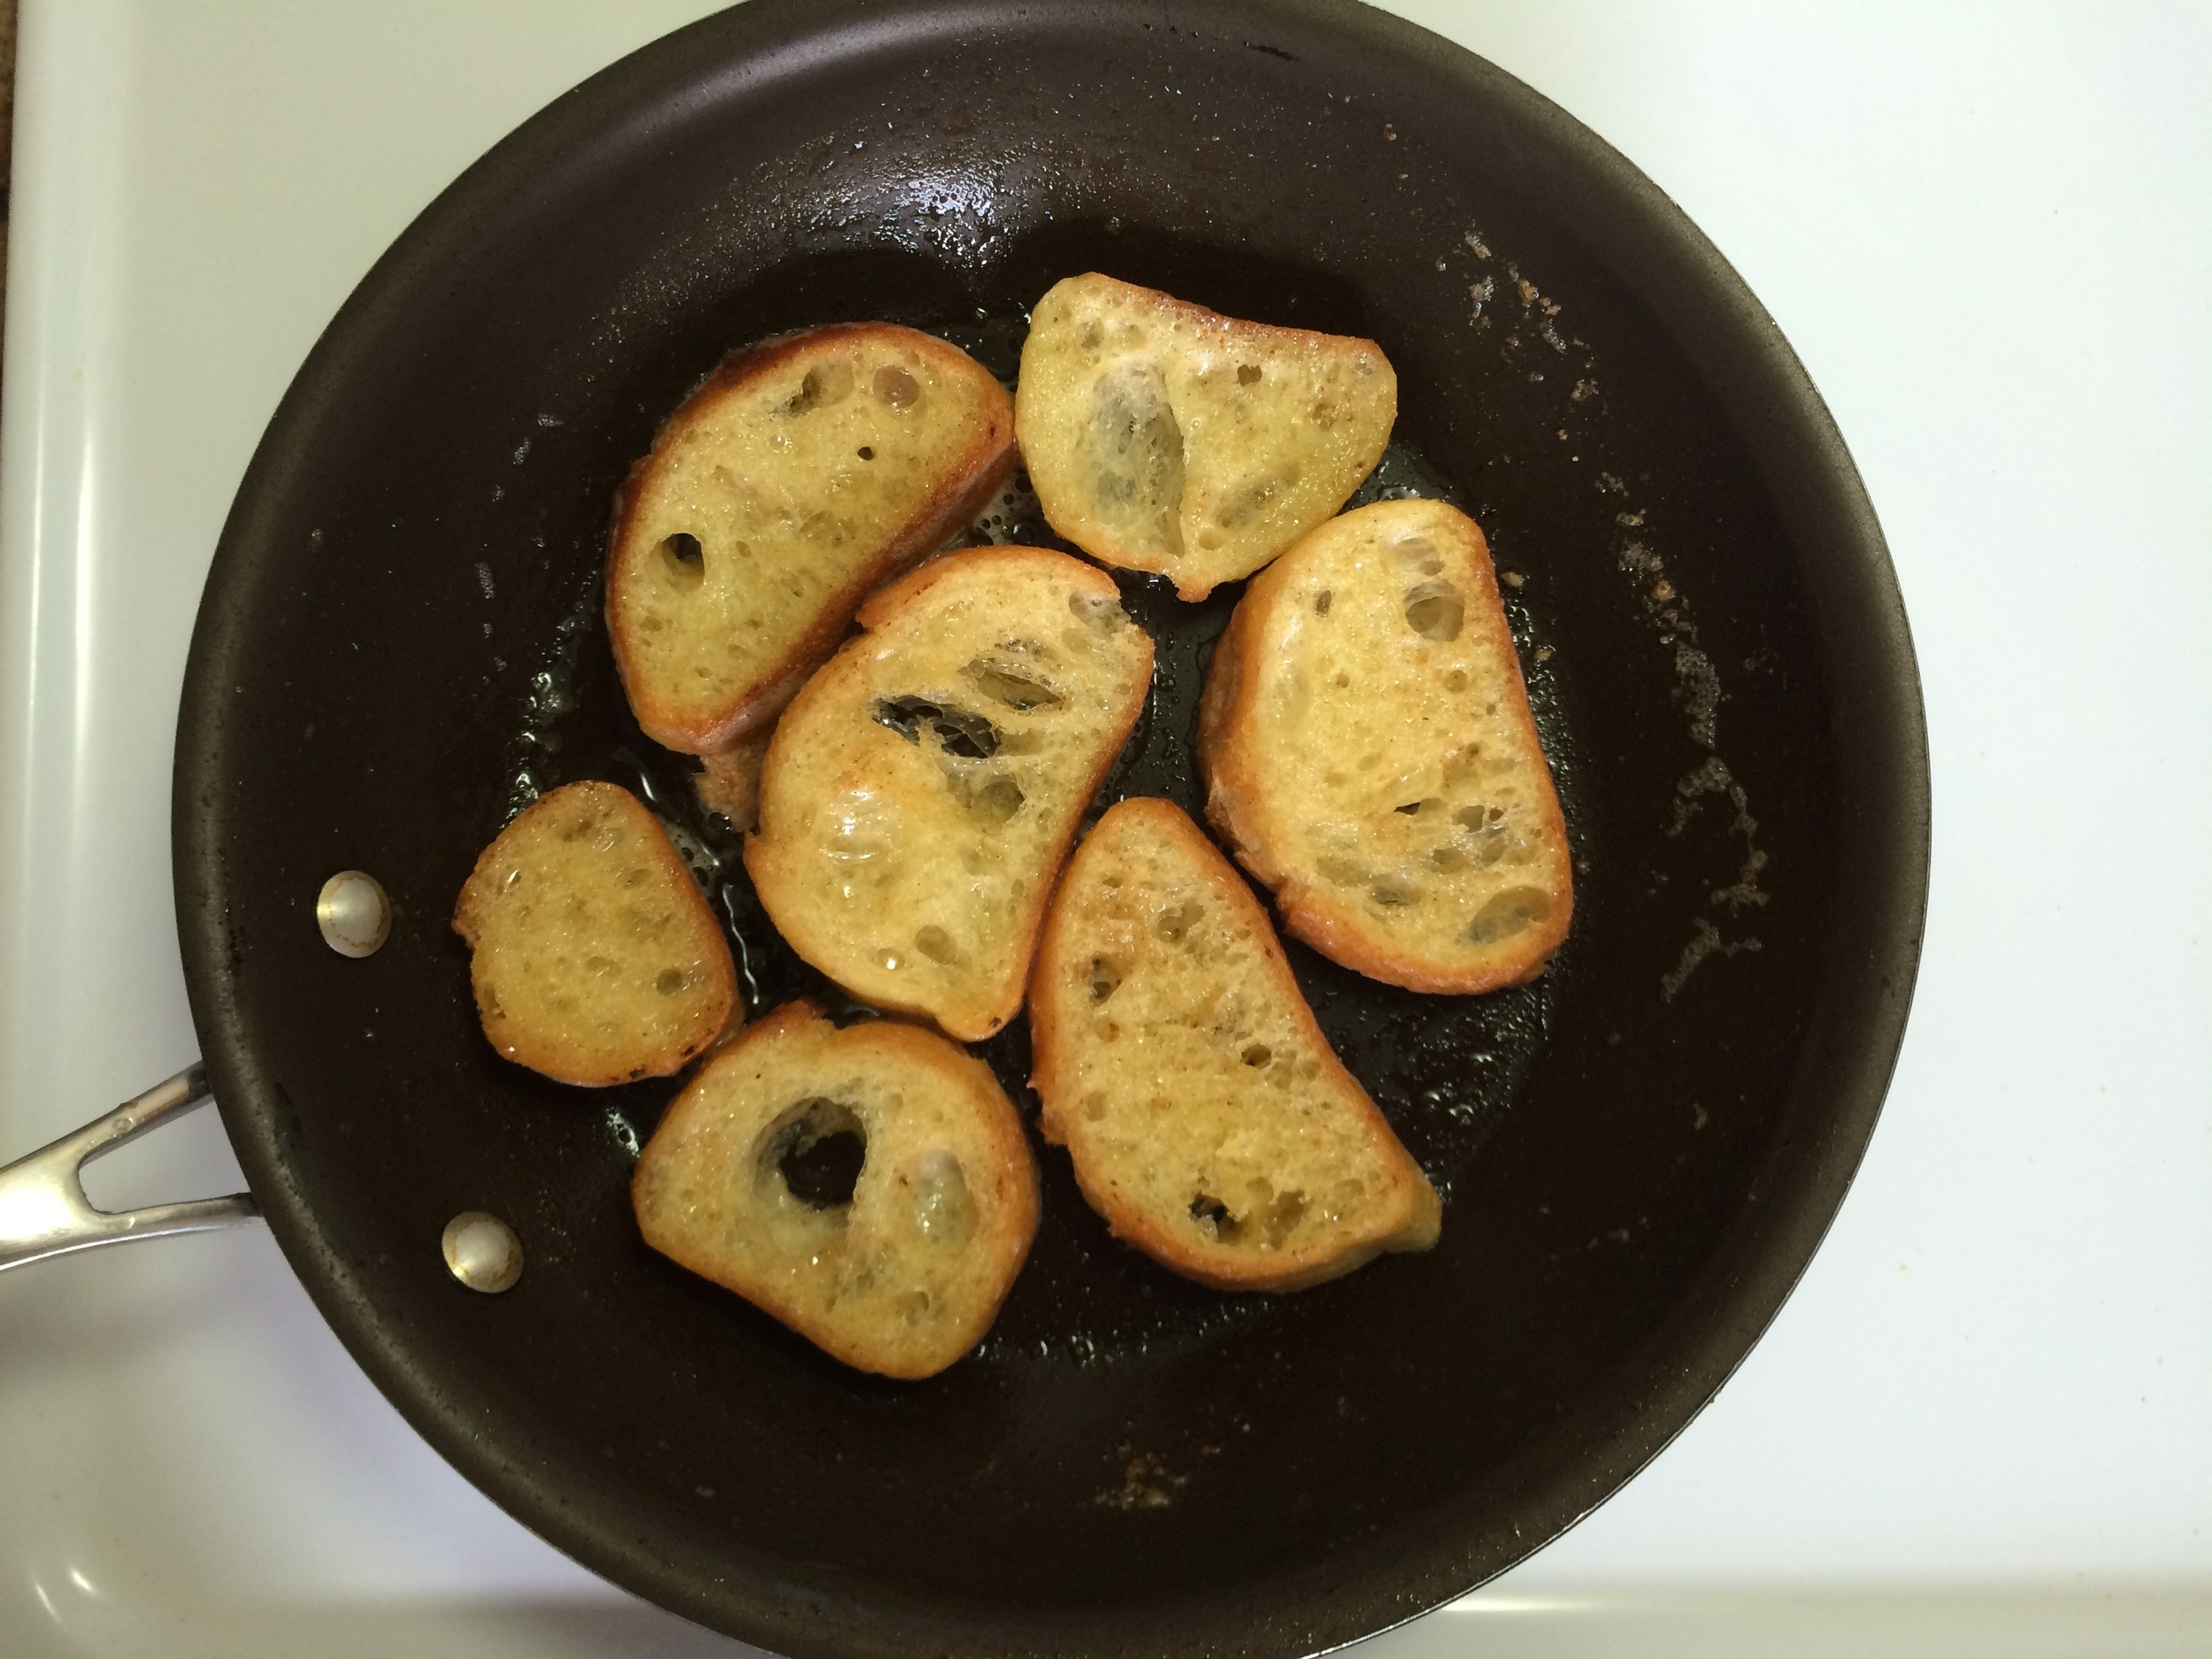 Butter and bread in pan